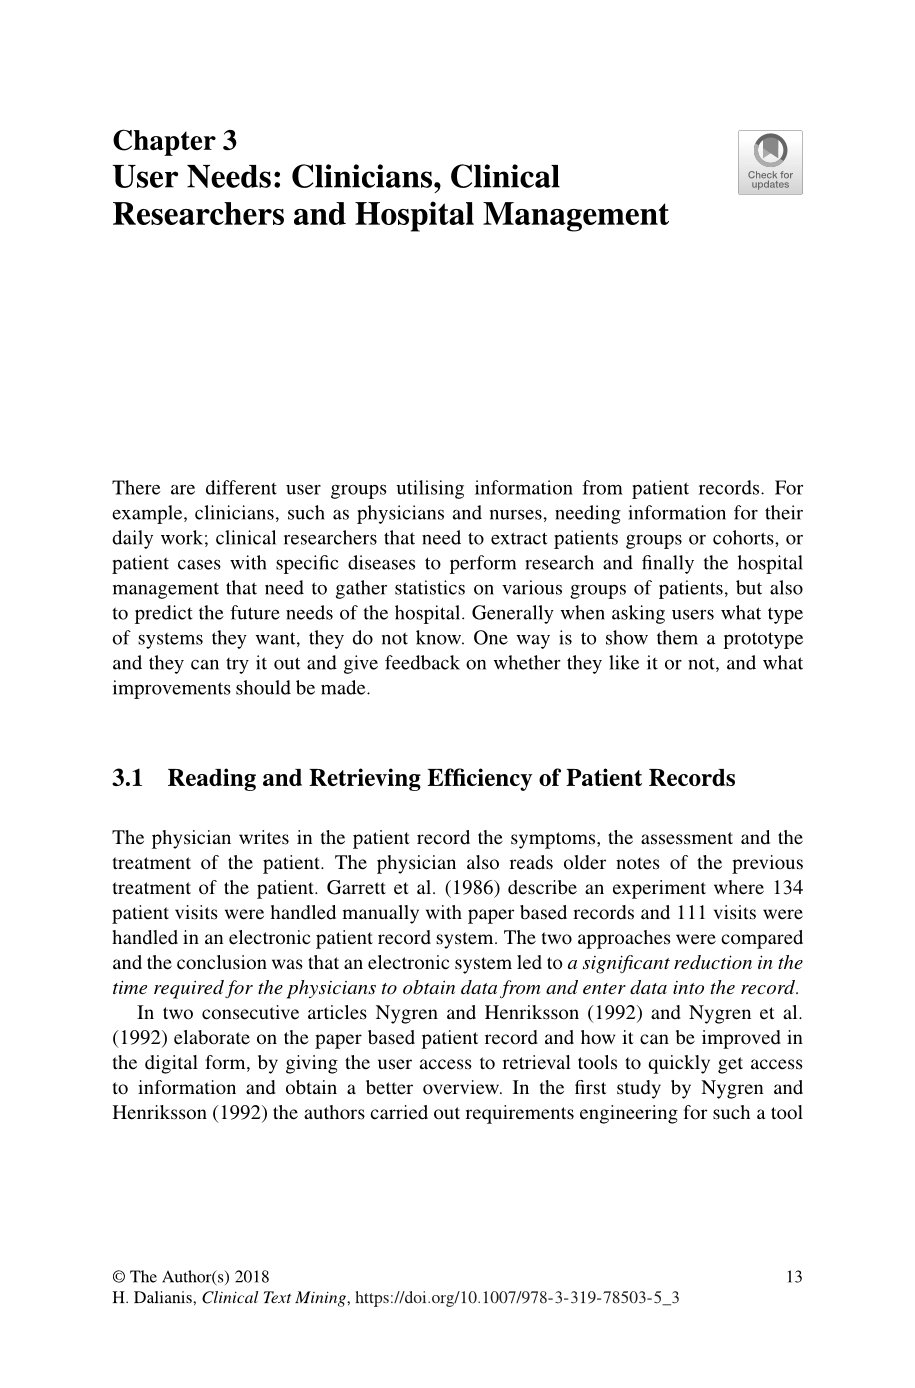 Clinical Text Mining: Secondary Use of Electronic Patient Records-preview-5